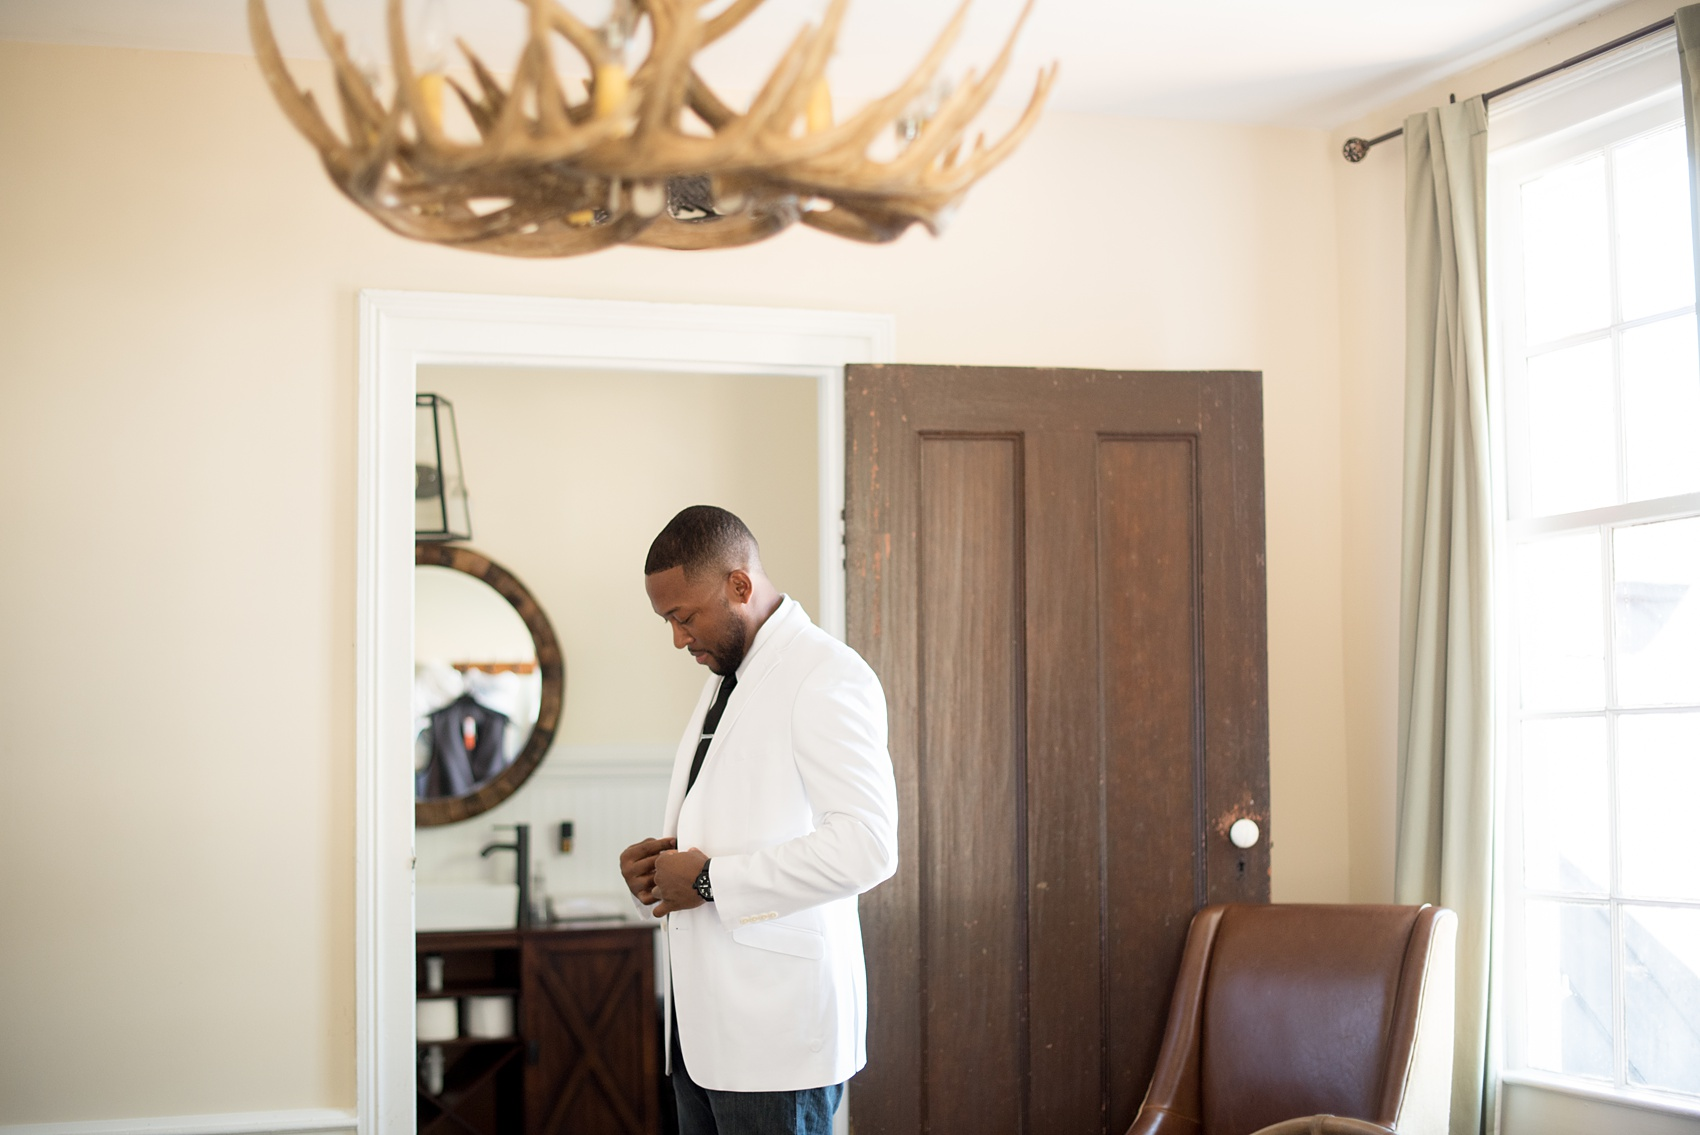 Mikkel Paige Photography pictures of a wedding at Leslie-Alford Mim's House in North Carolina for a Mad Dash Weddings event. Photo of the antler chandelier and getting ready in the groom's suite.